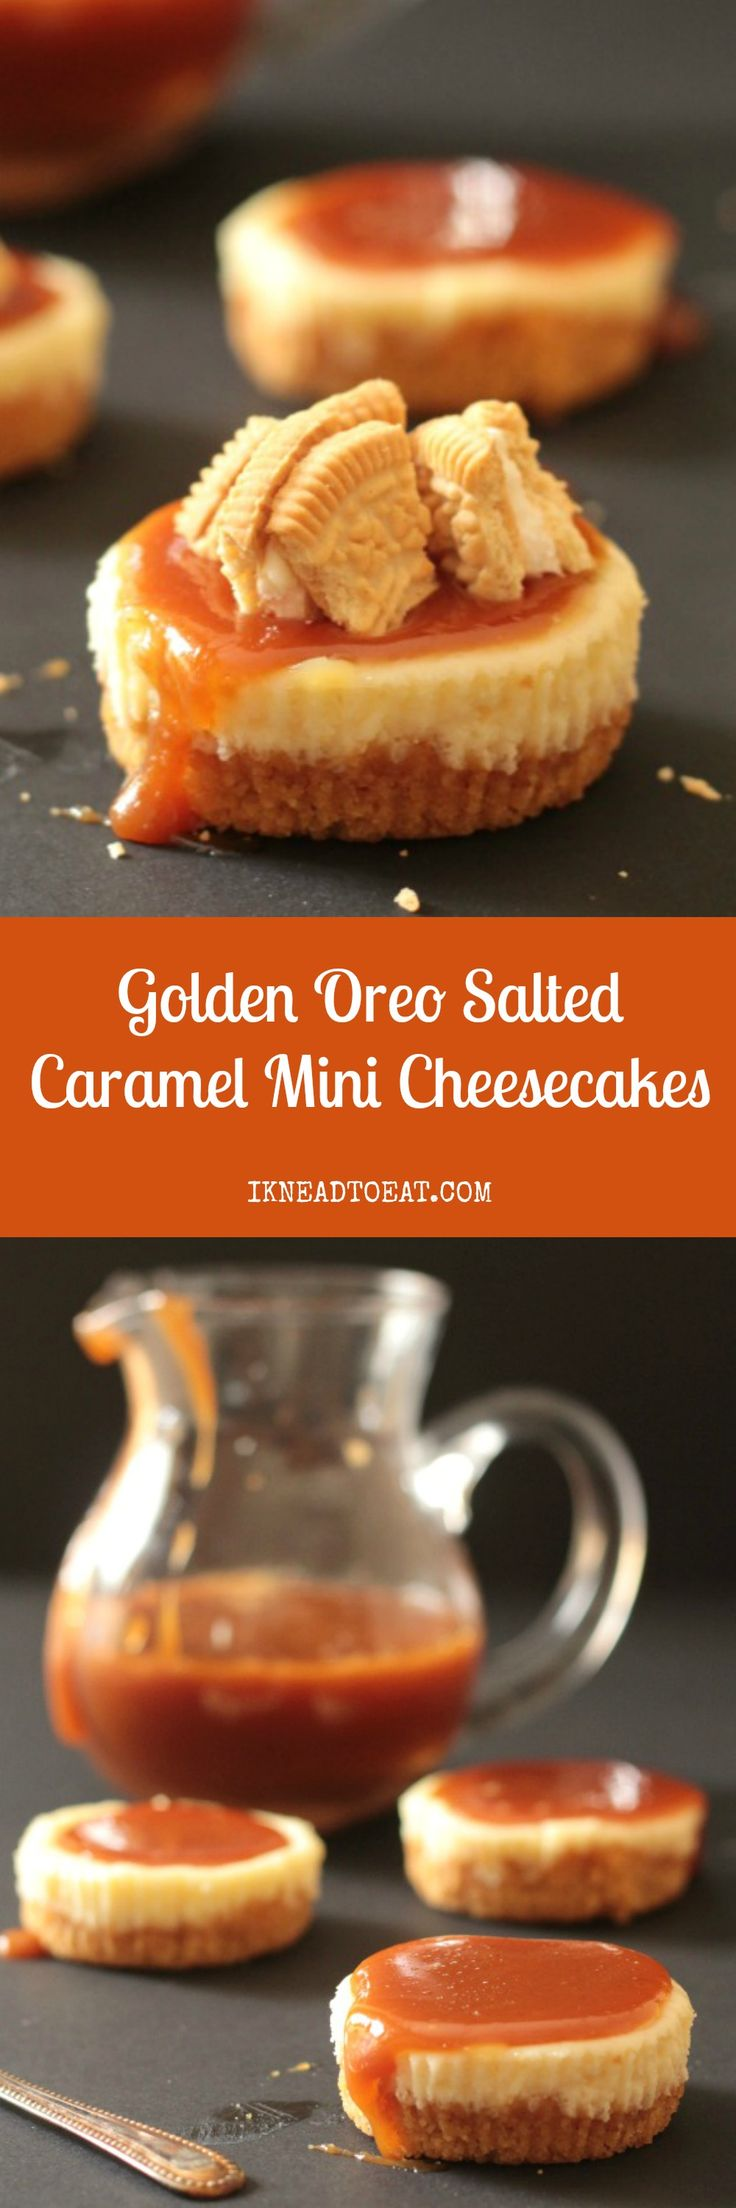 Golden Oreo Salted Caramel Mini Cheesecakes